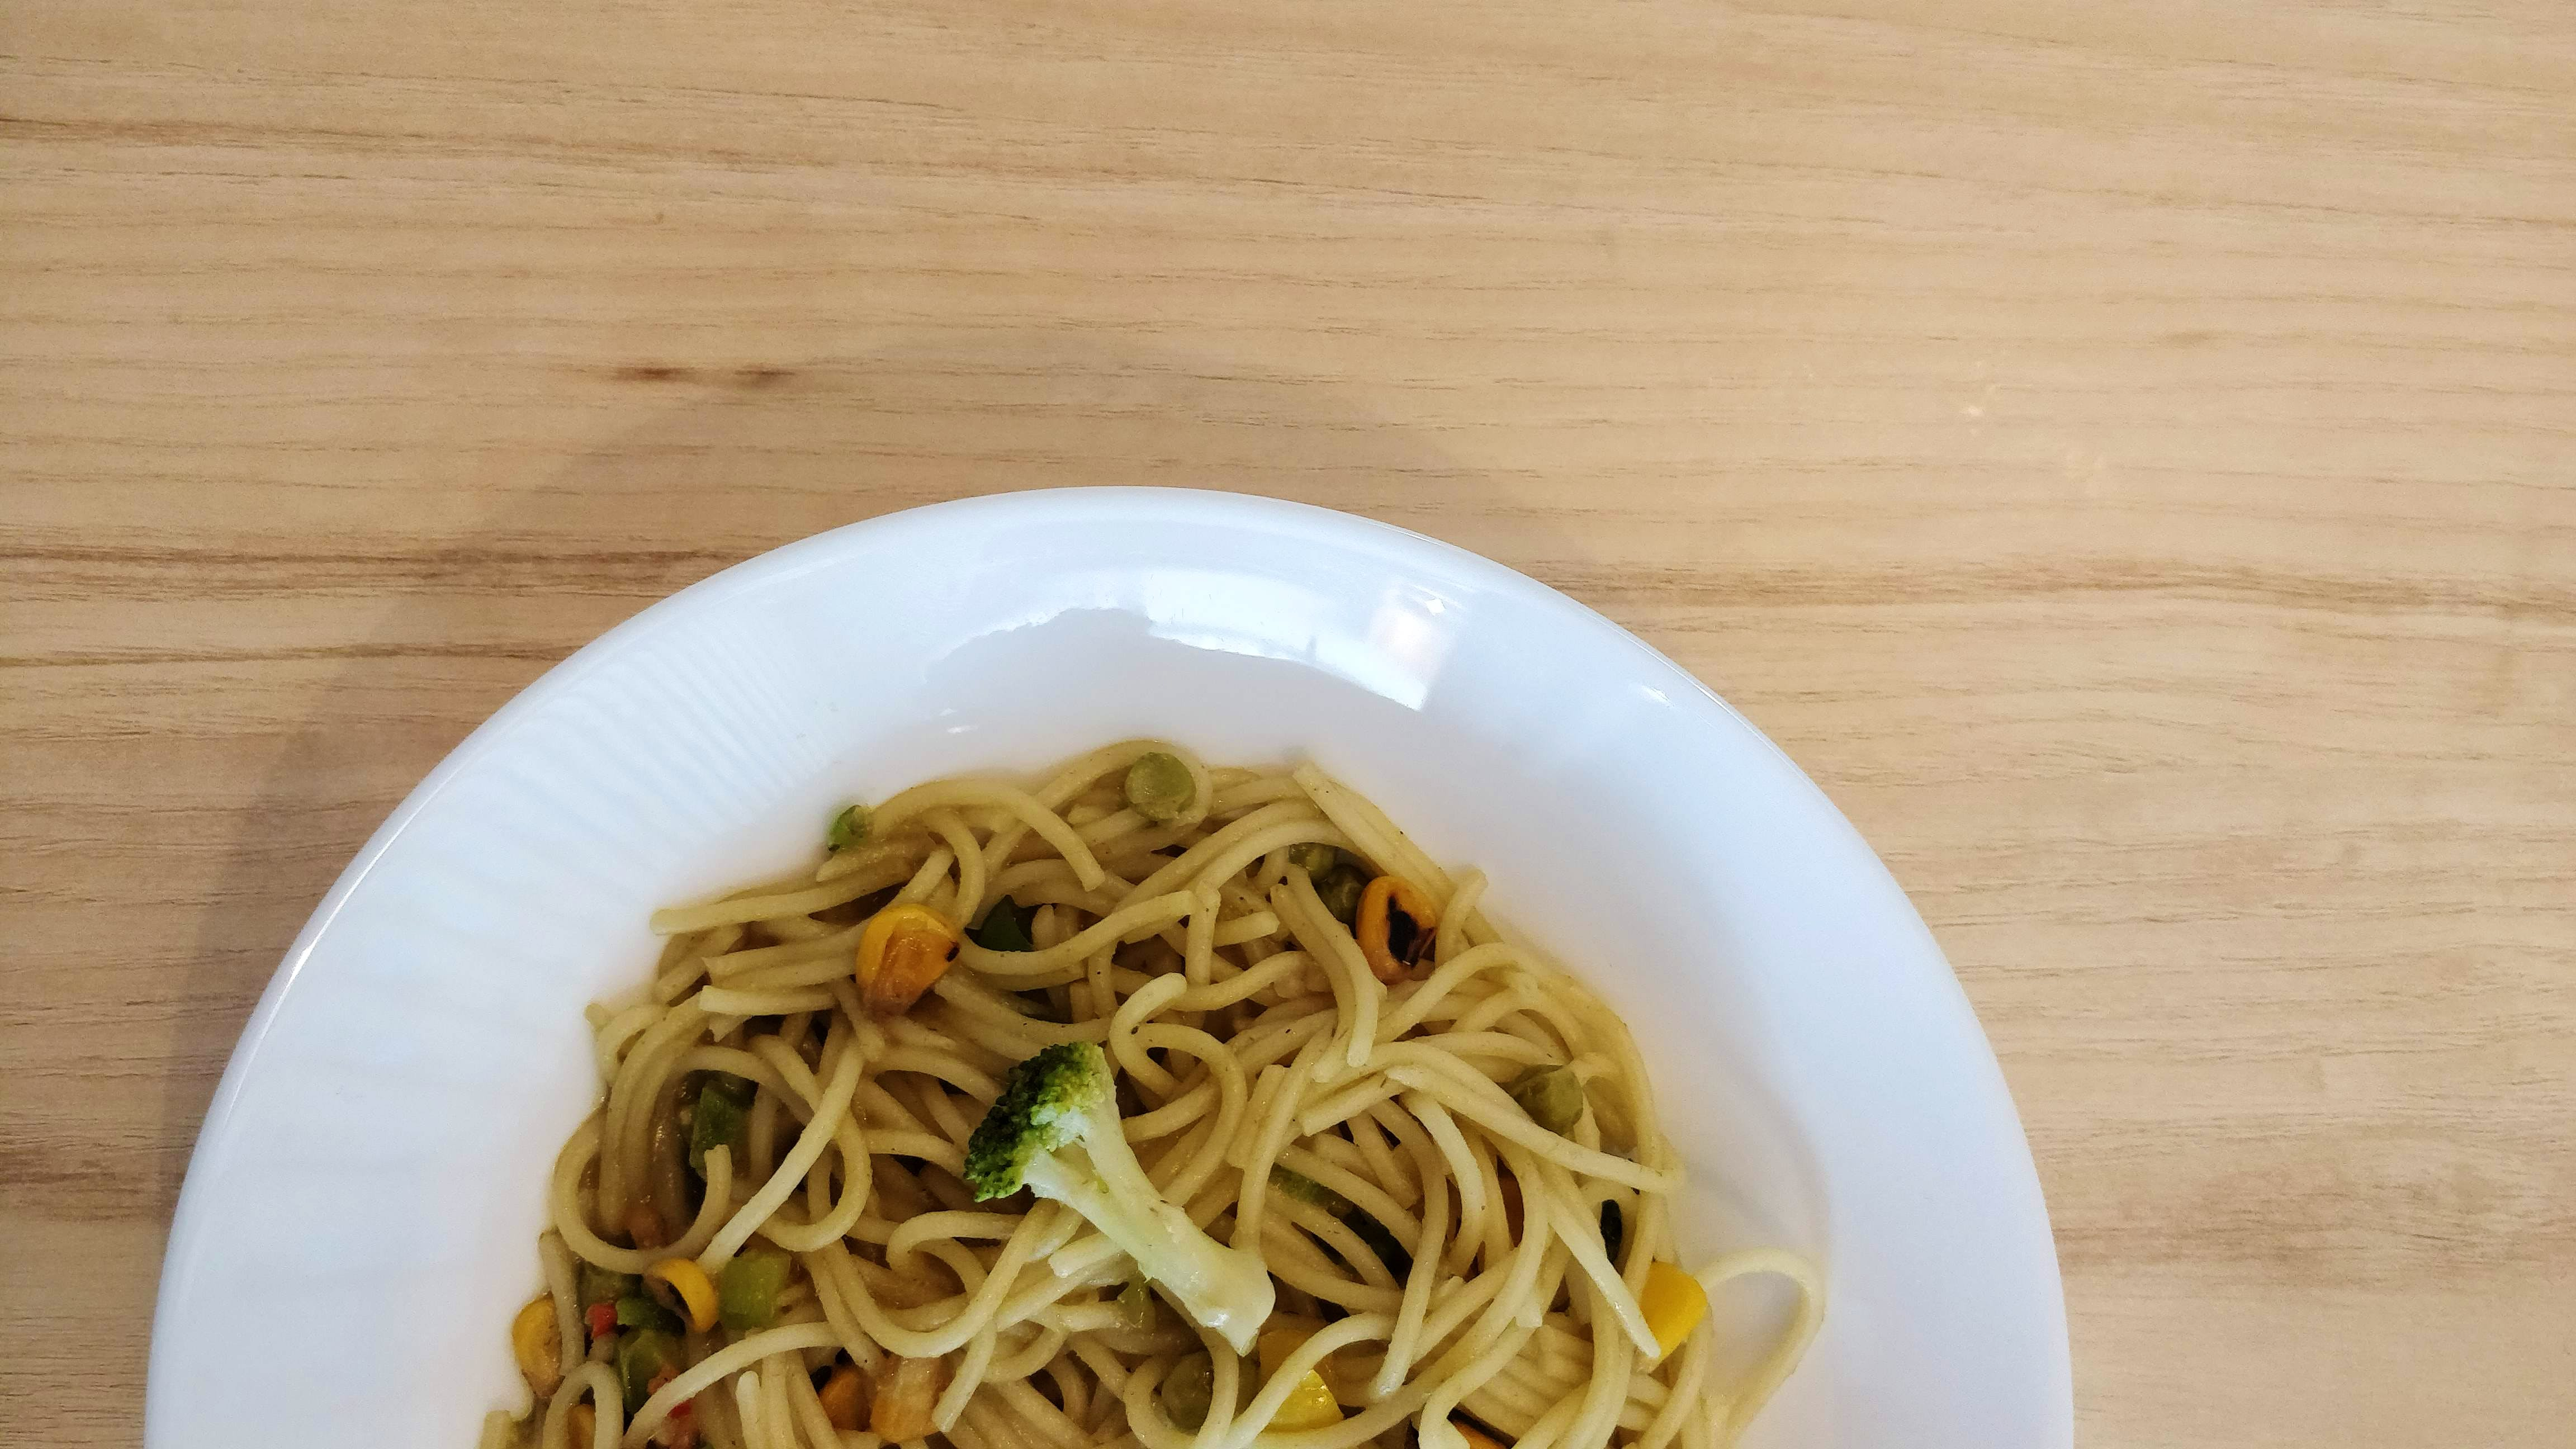 Dish,Food,Cuisine,Noodle,Chow mein,Chinese noodles,Hot dry noodles,Spaghetti,Bigoli,Fried noodles